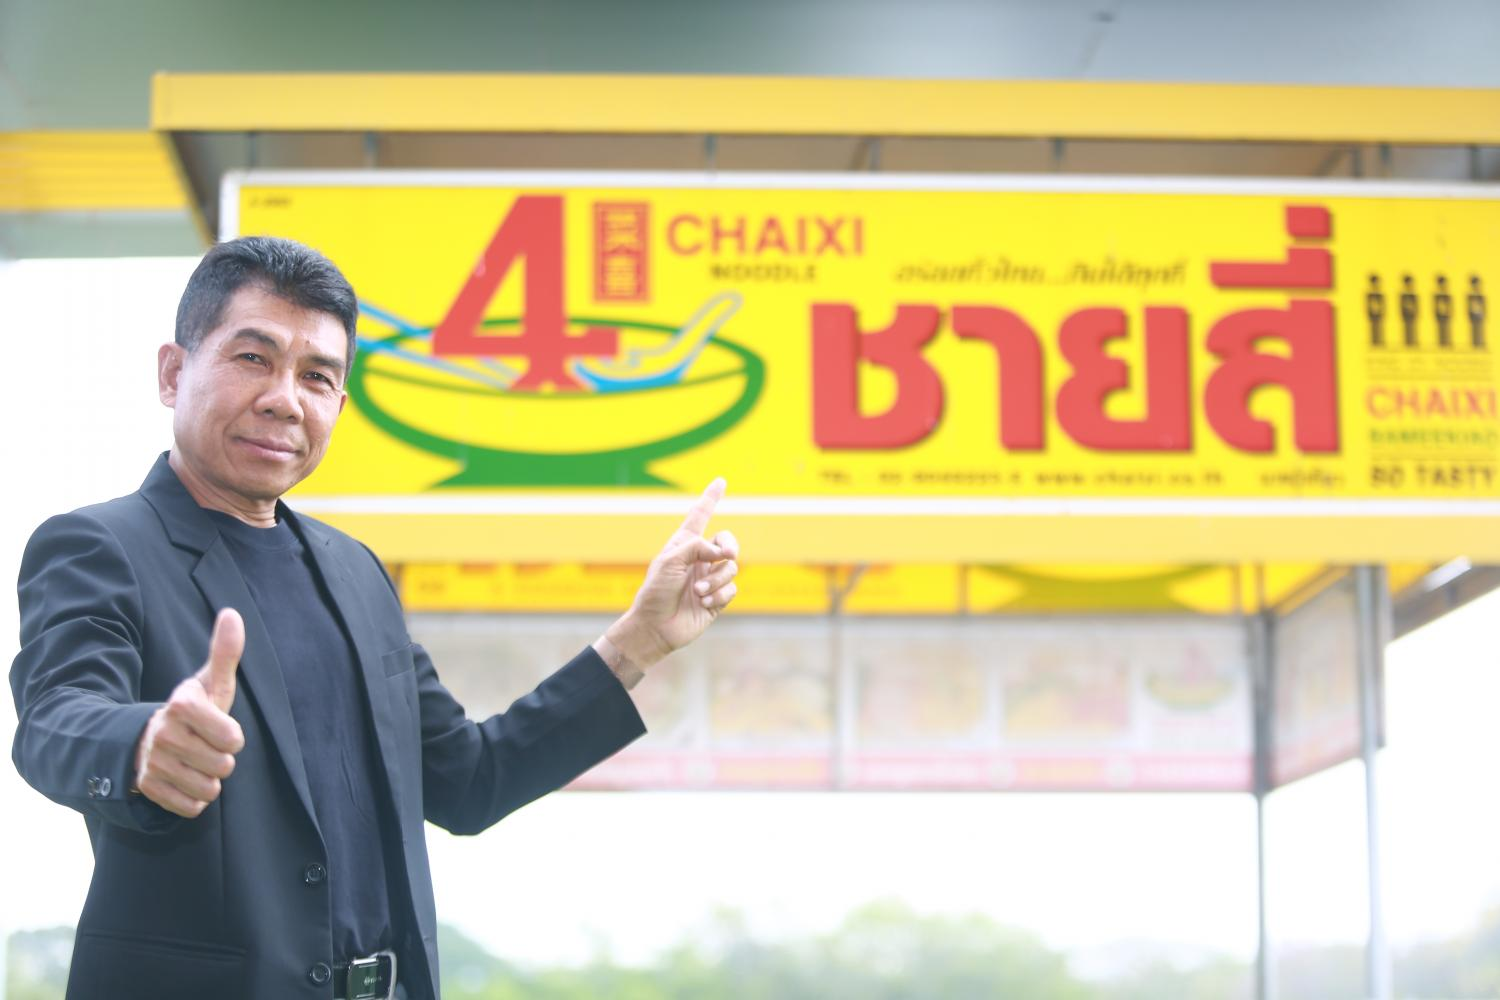 Mr Panrob plans to expand Chaixi Bameekiao into the Middle East, starting in Bahrain.